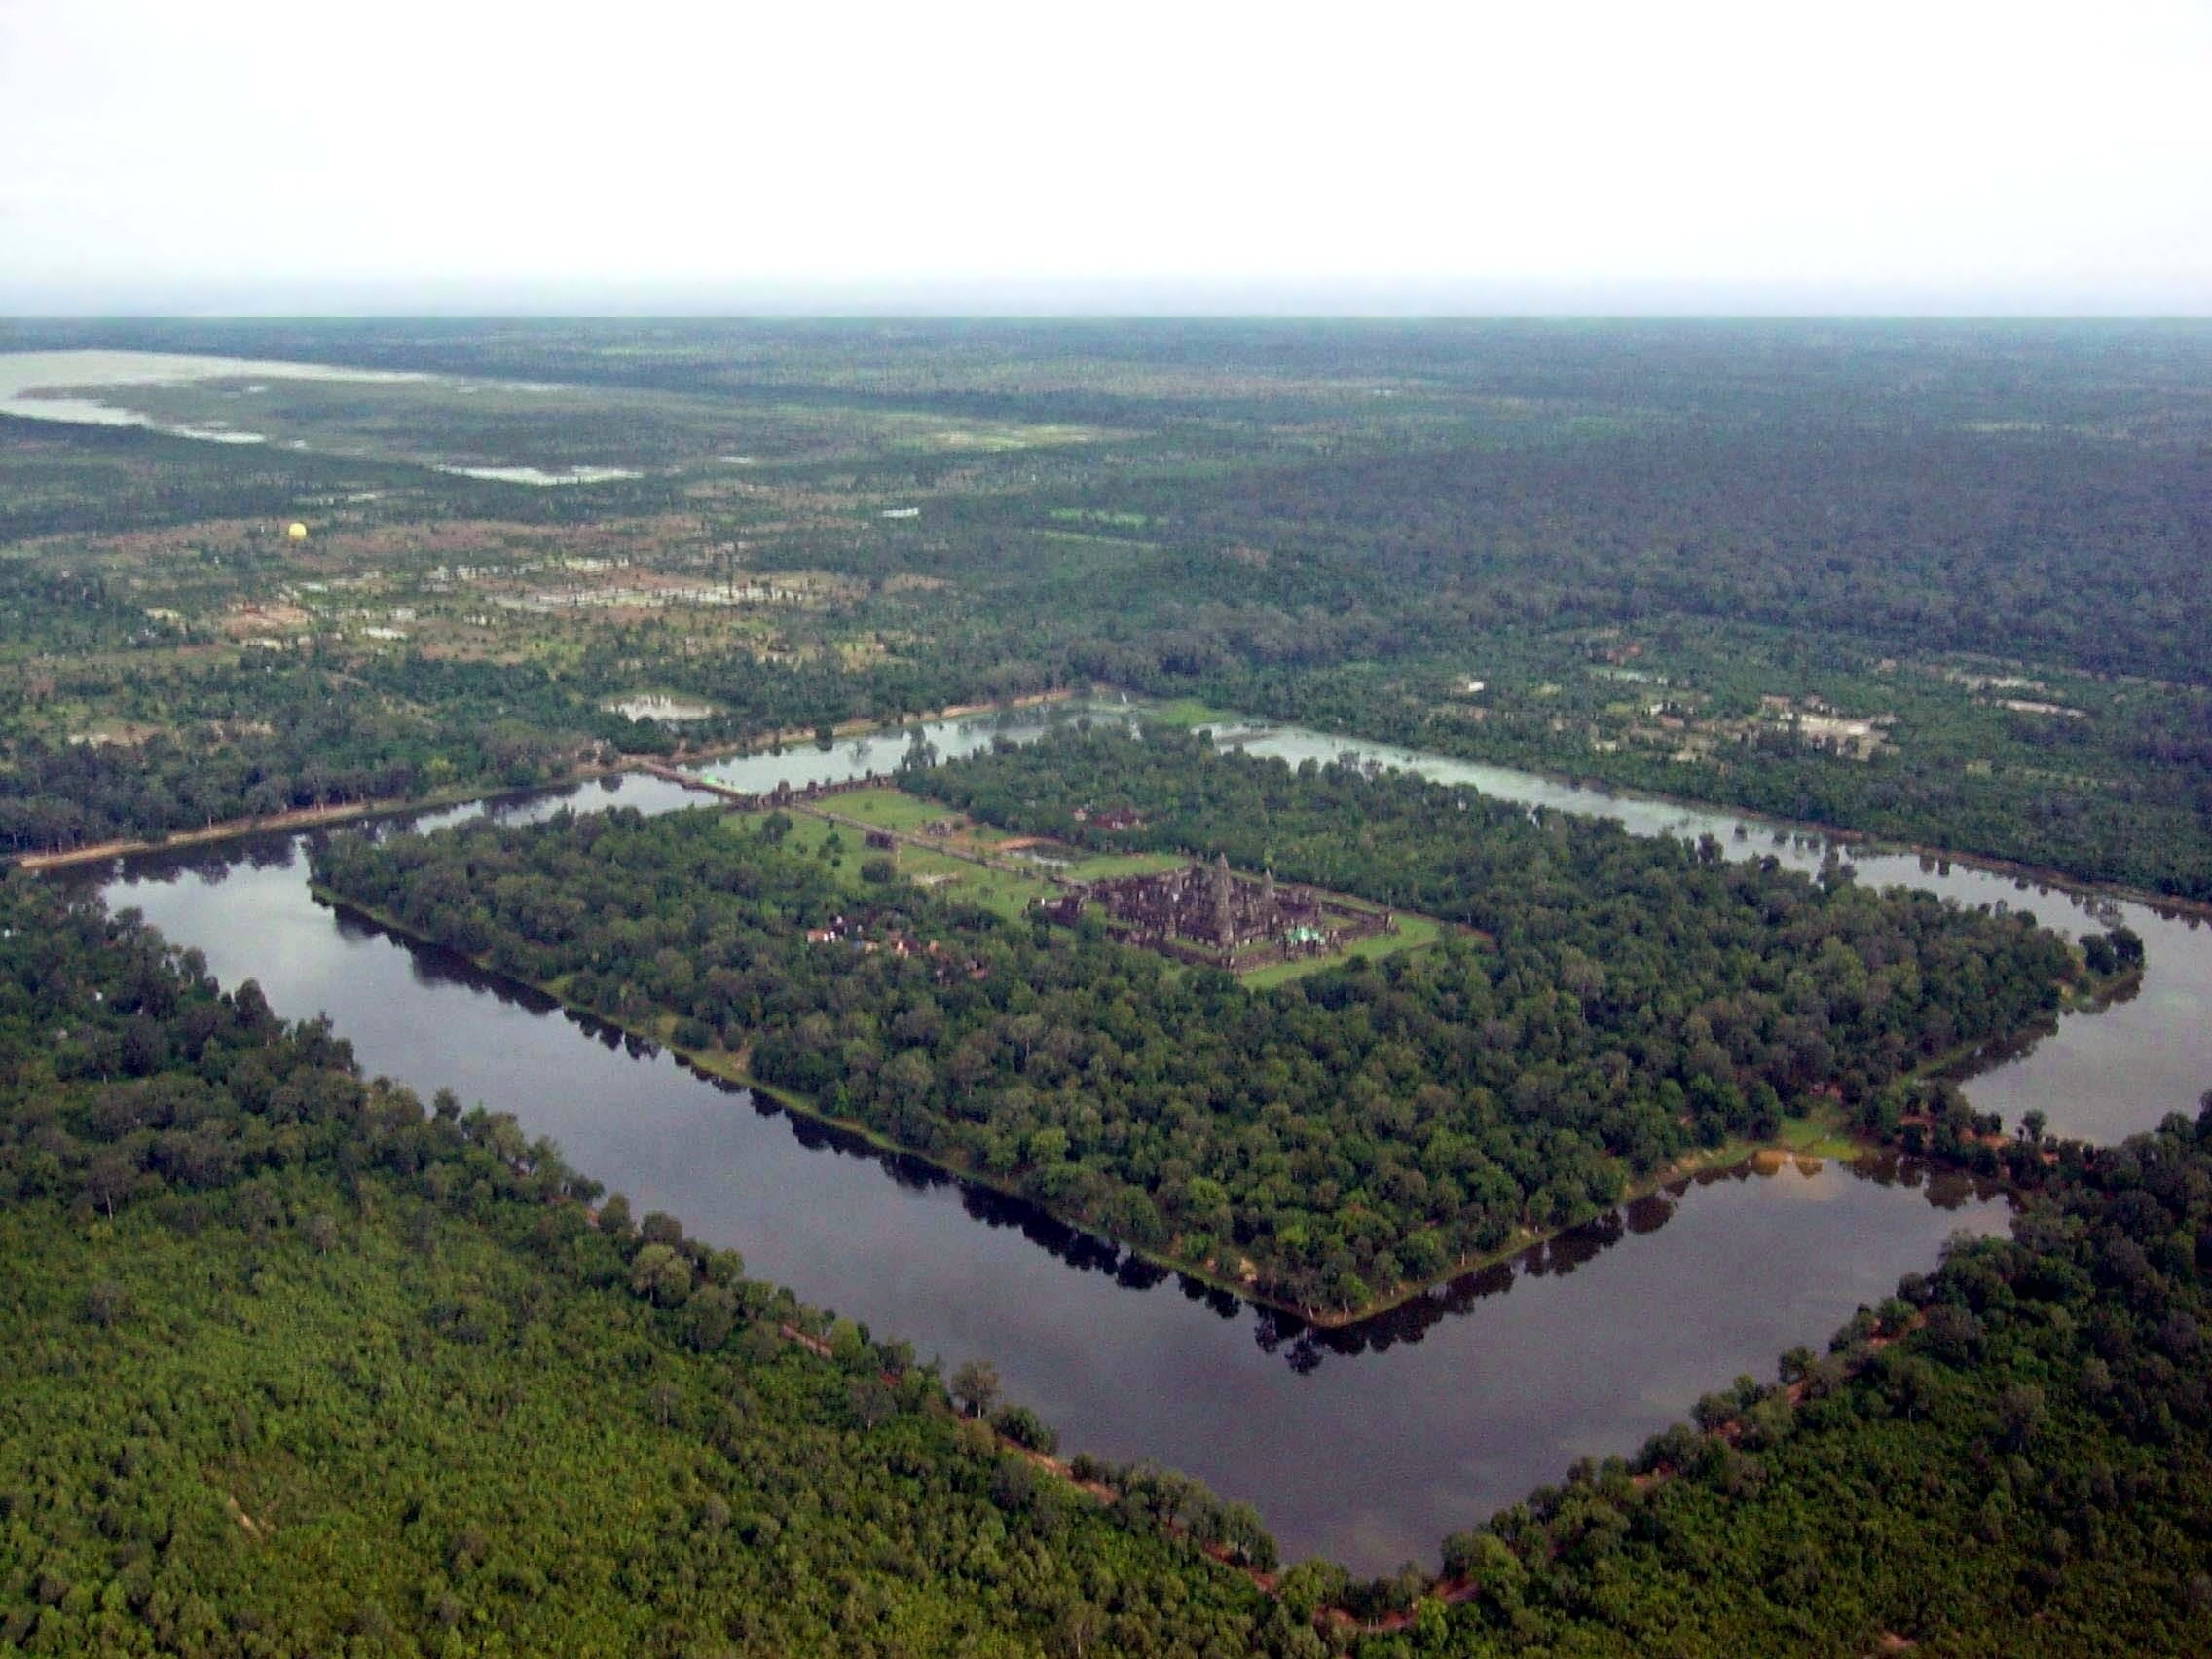 http://upload.wikimedia.org/wikipedia/commons/5/5d/Angkor-Wat-from-the-air.JPG